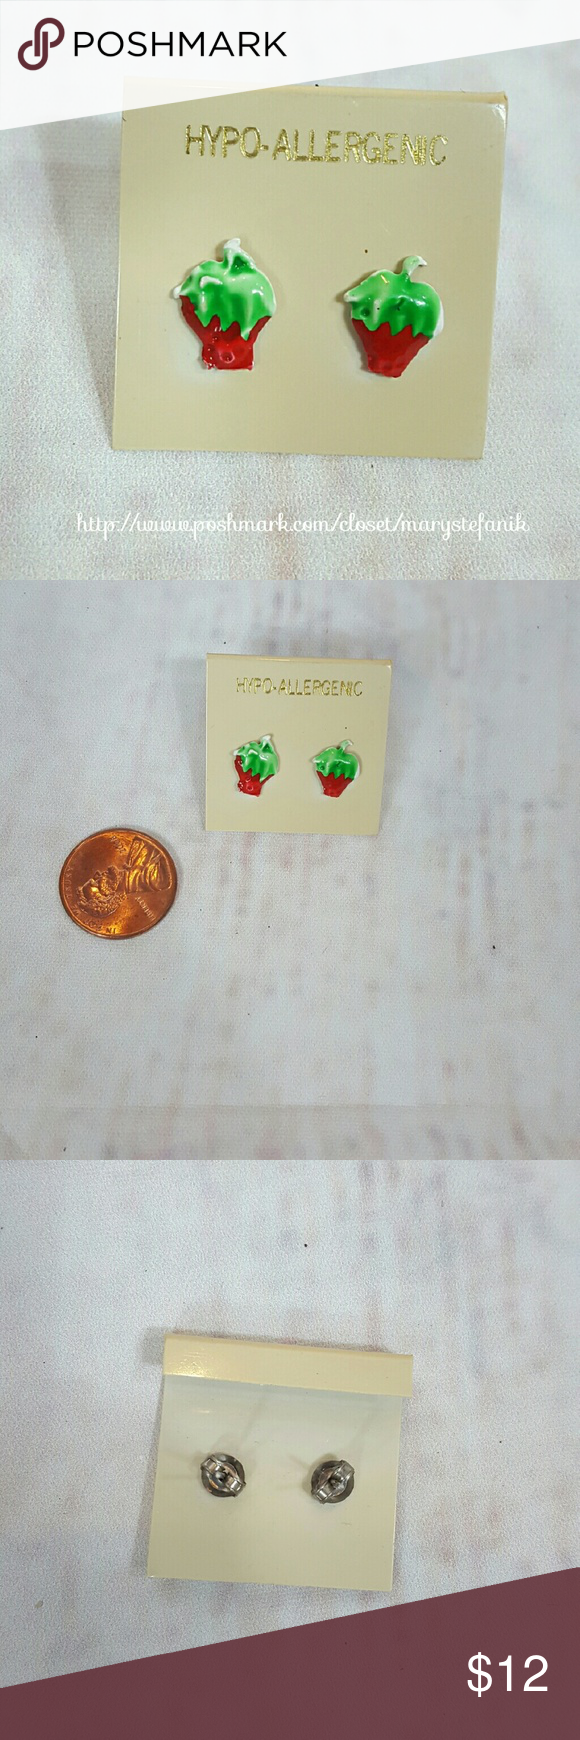 strawberry uk har product earrings co enamel silver sterling jewellerybox stud